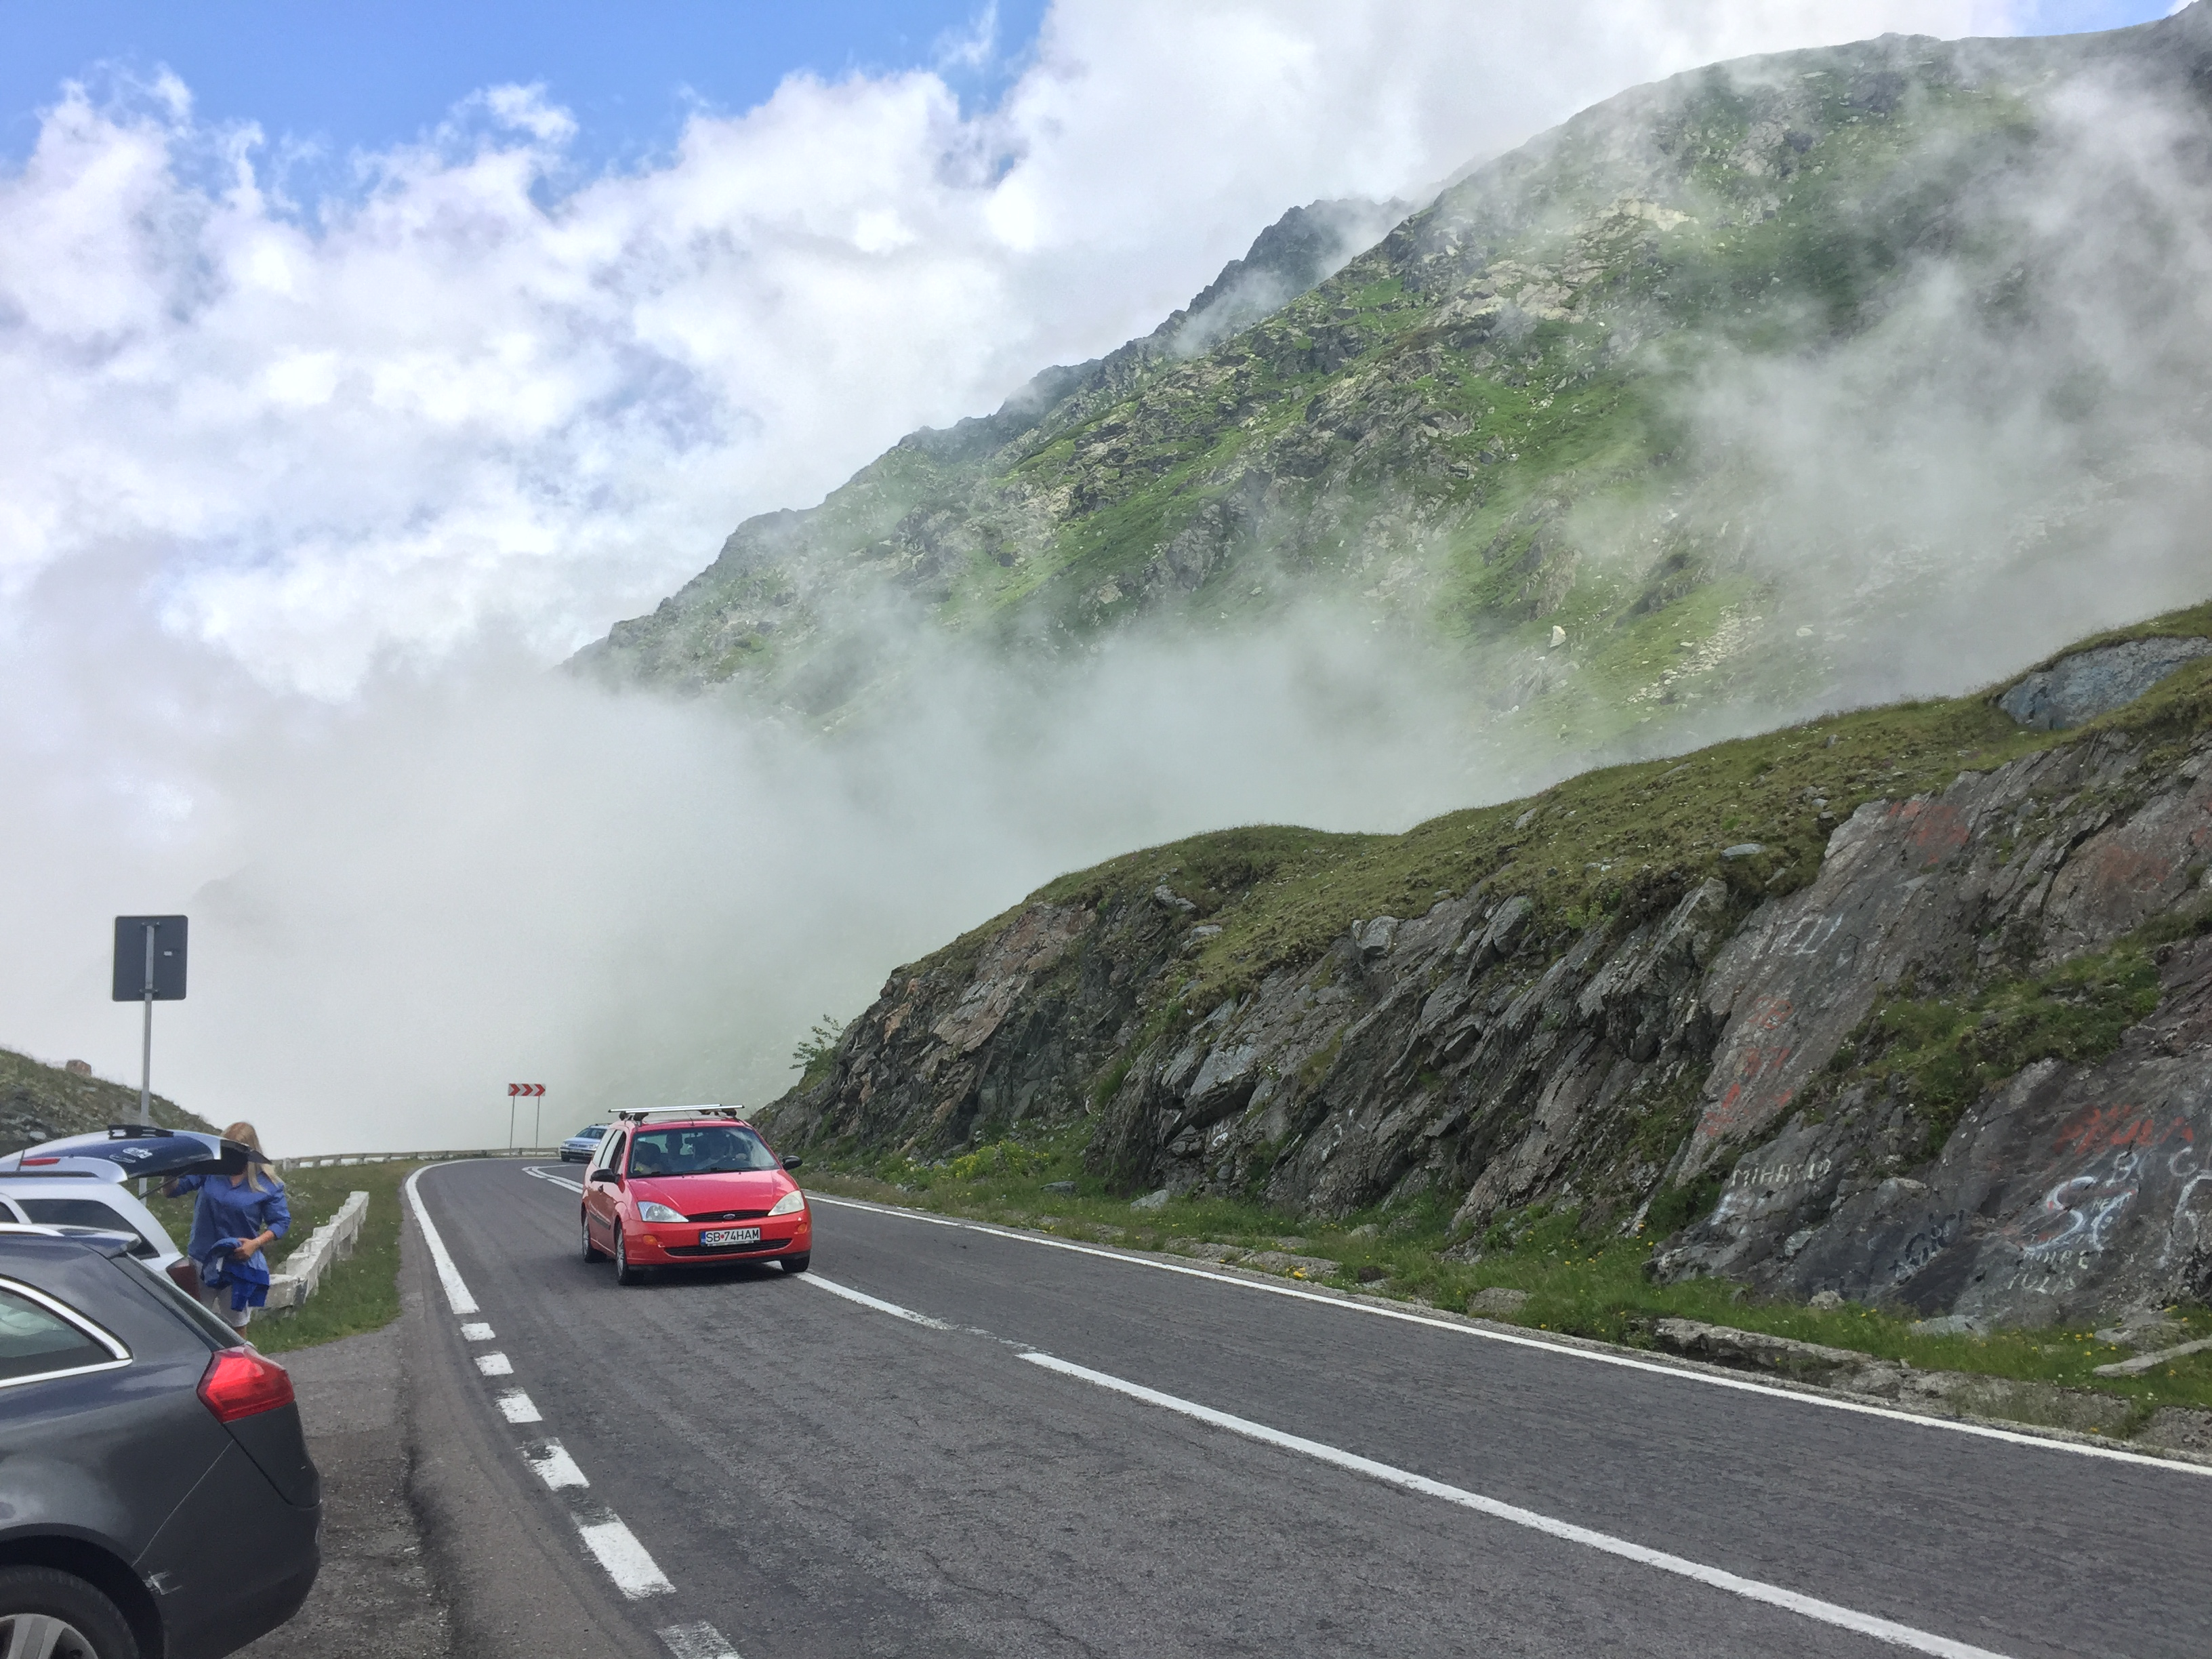 Driving the 'best road in the world': the Transfagarasan